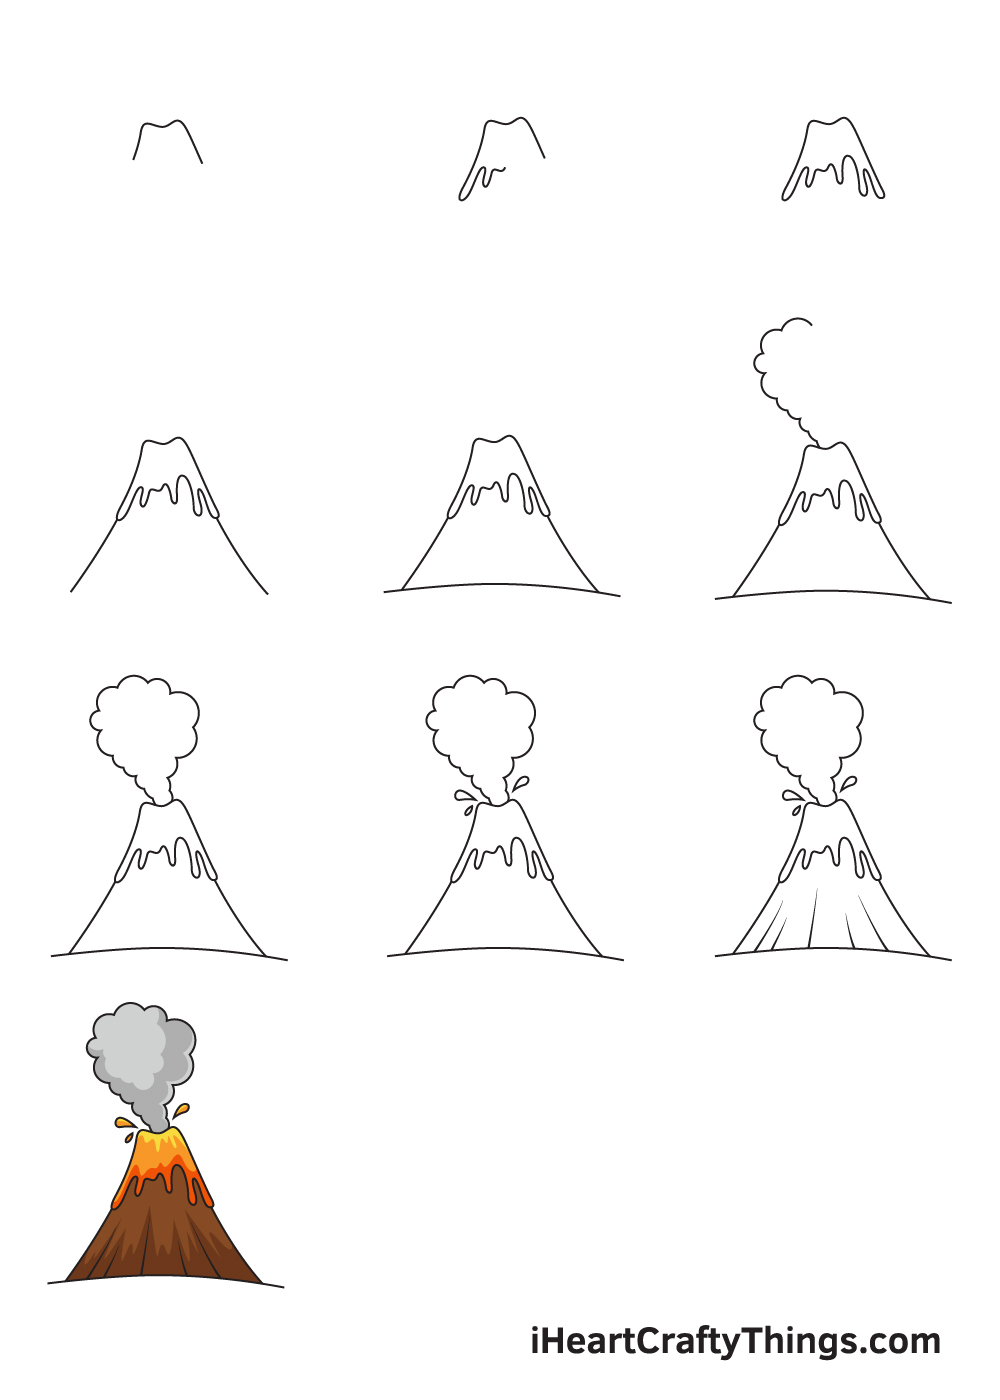 drawing volcano in 9 steps